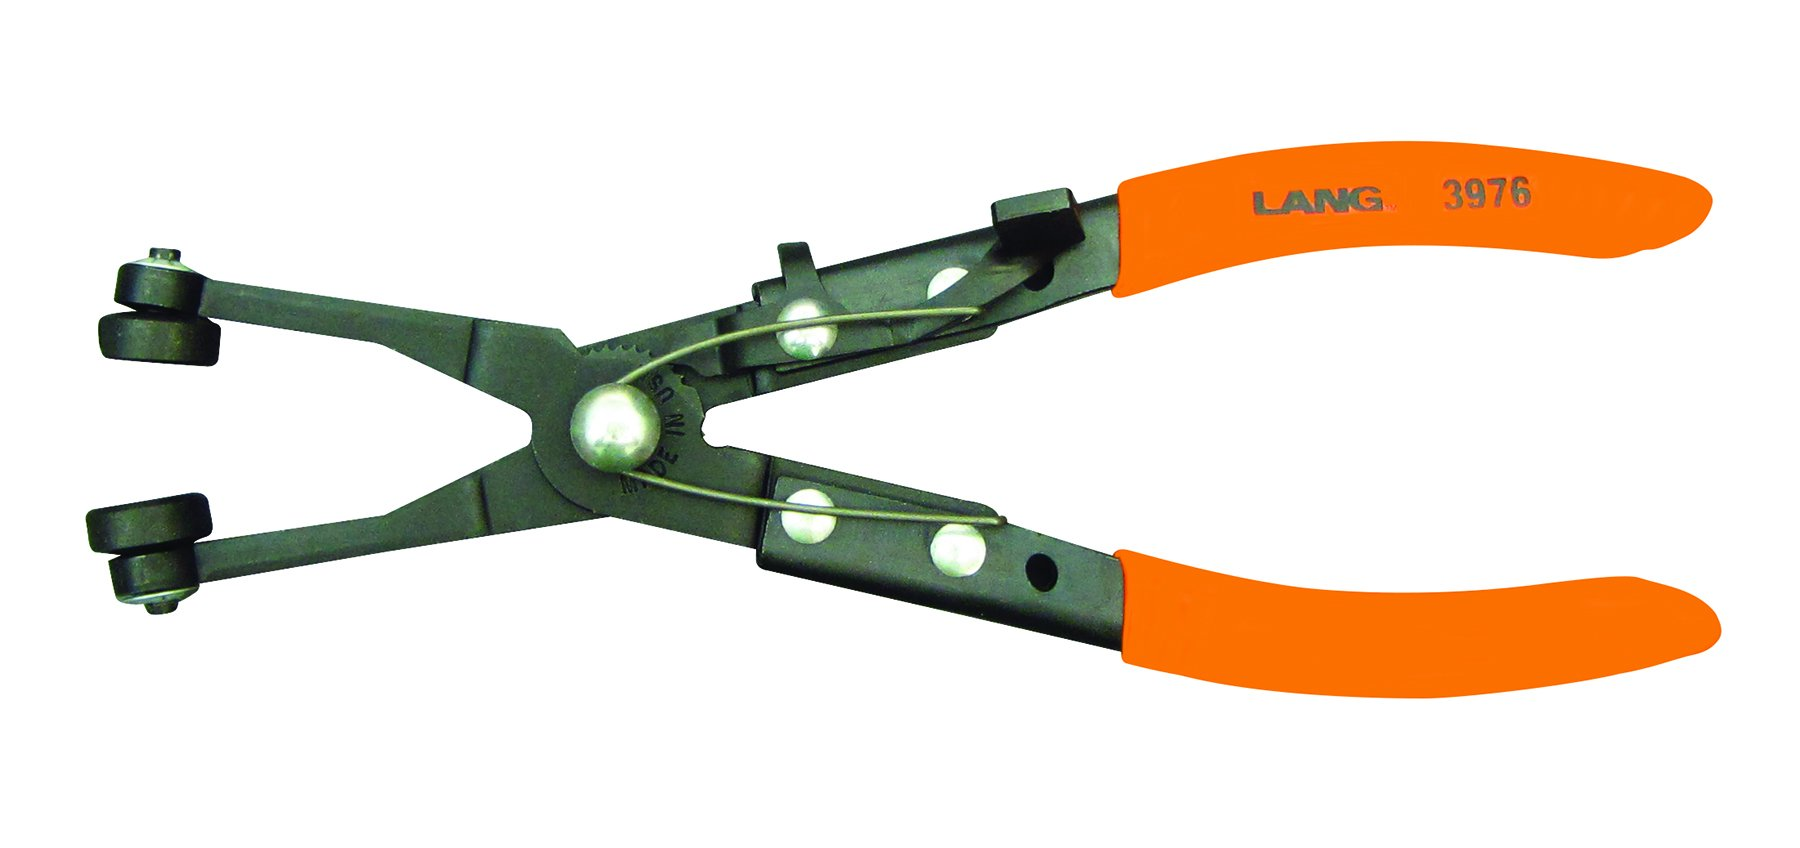 Lang Tools 3976 Hose Clamp Pliers